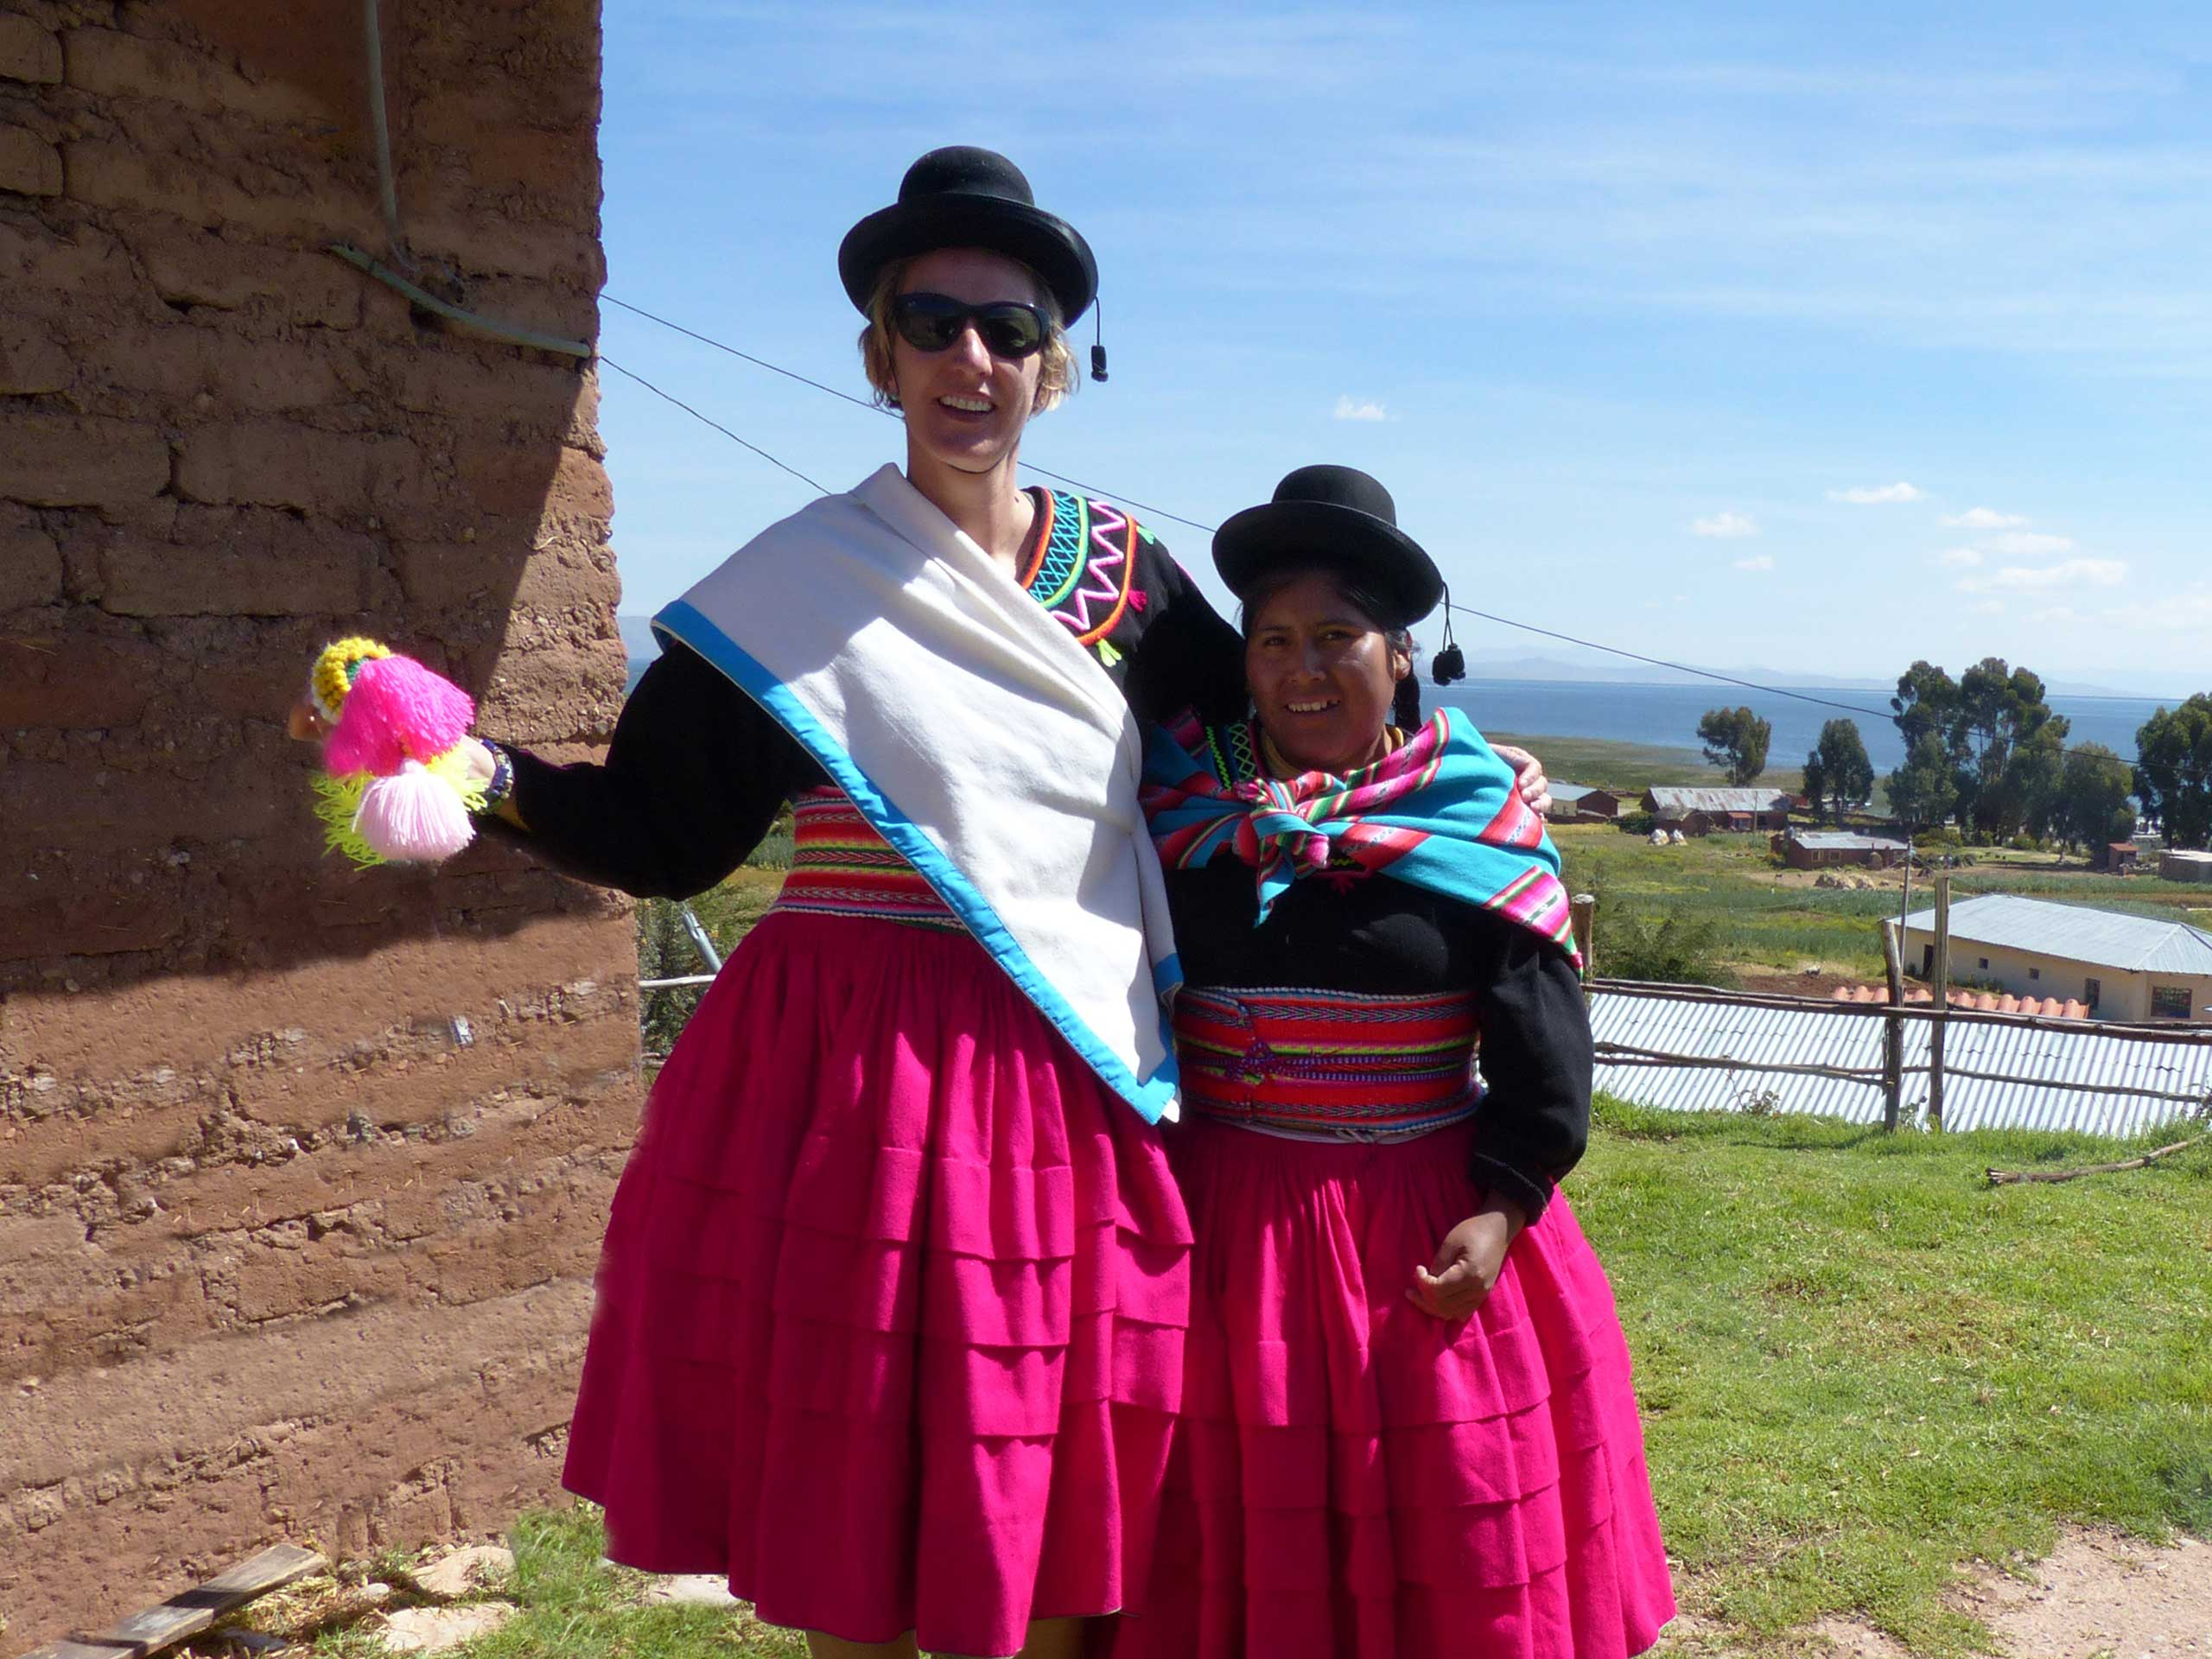 SWWW and Cholita in national costume, Lake Titicaca, Peru